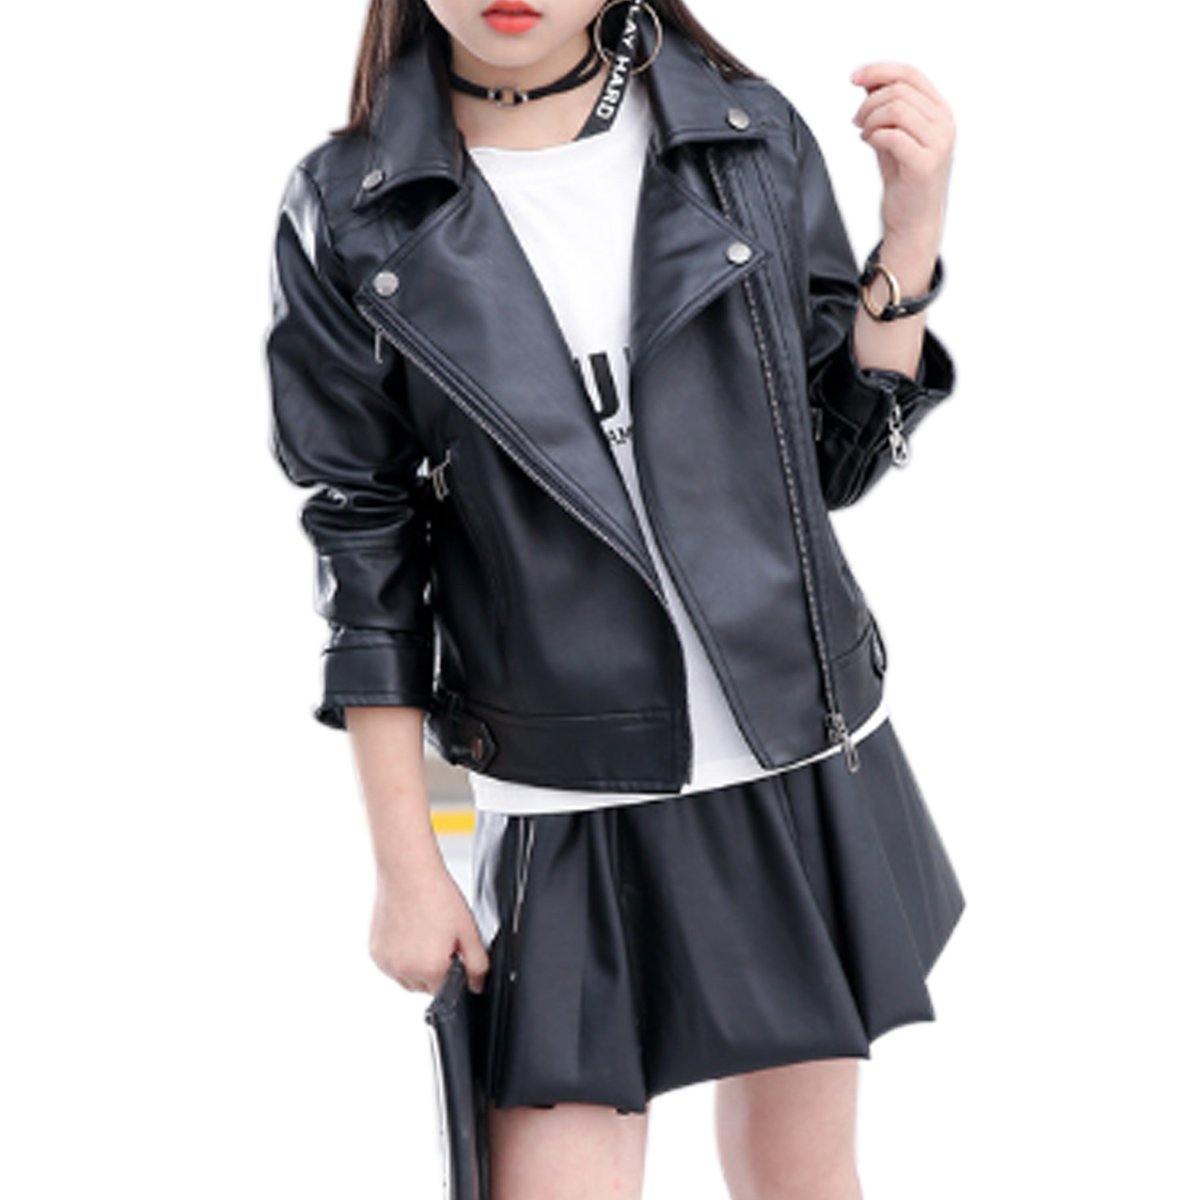 Elife Girls Fashion PU Leather Motorcycle Jacket Children's Outerwear Slim Coat Black 11-12Y …